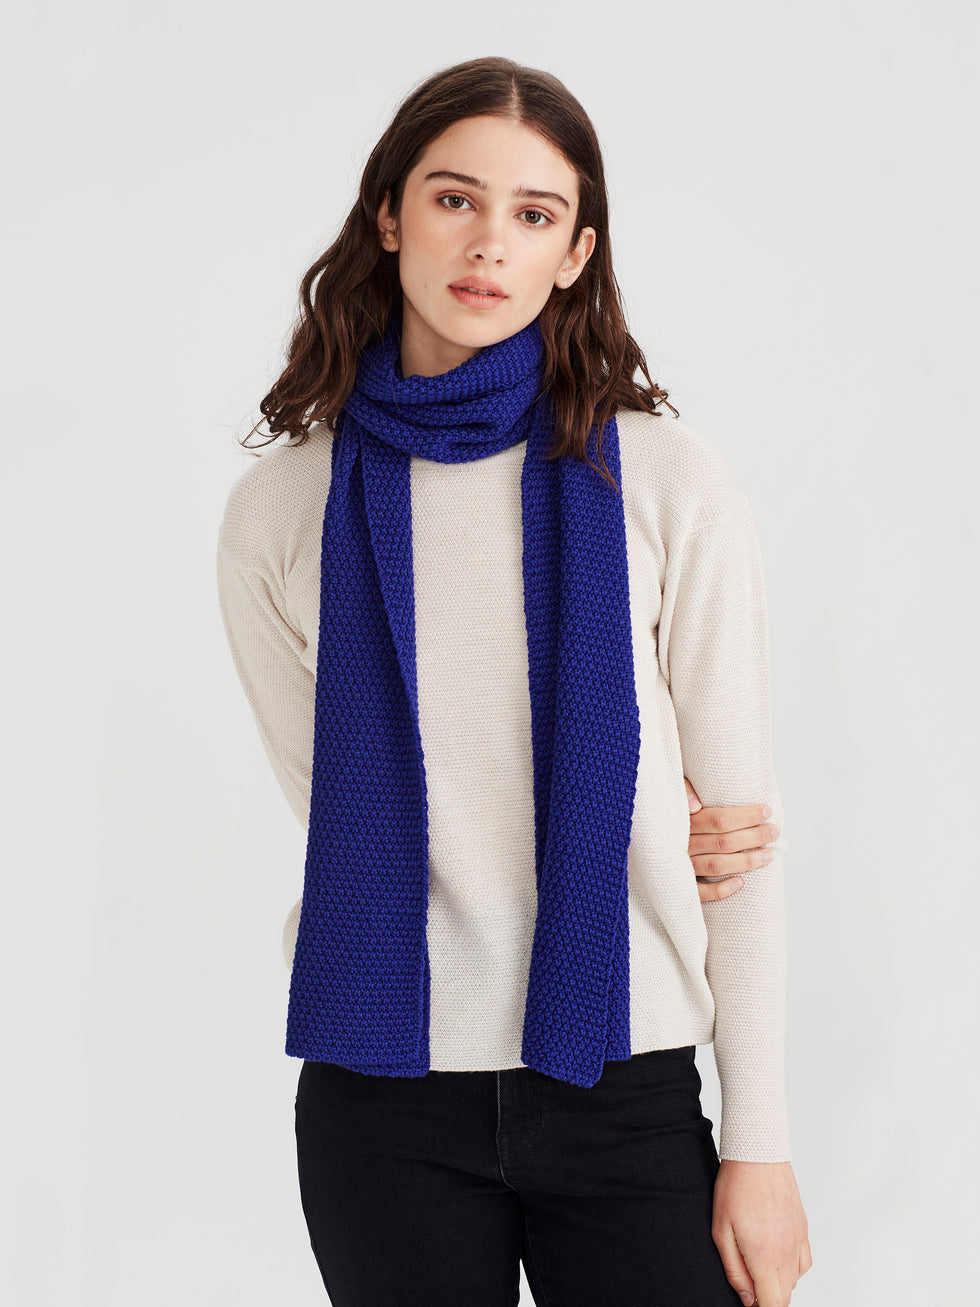 Moss Stitch Scarf (Merino Knit) Electric Blue